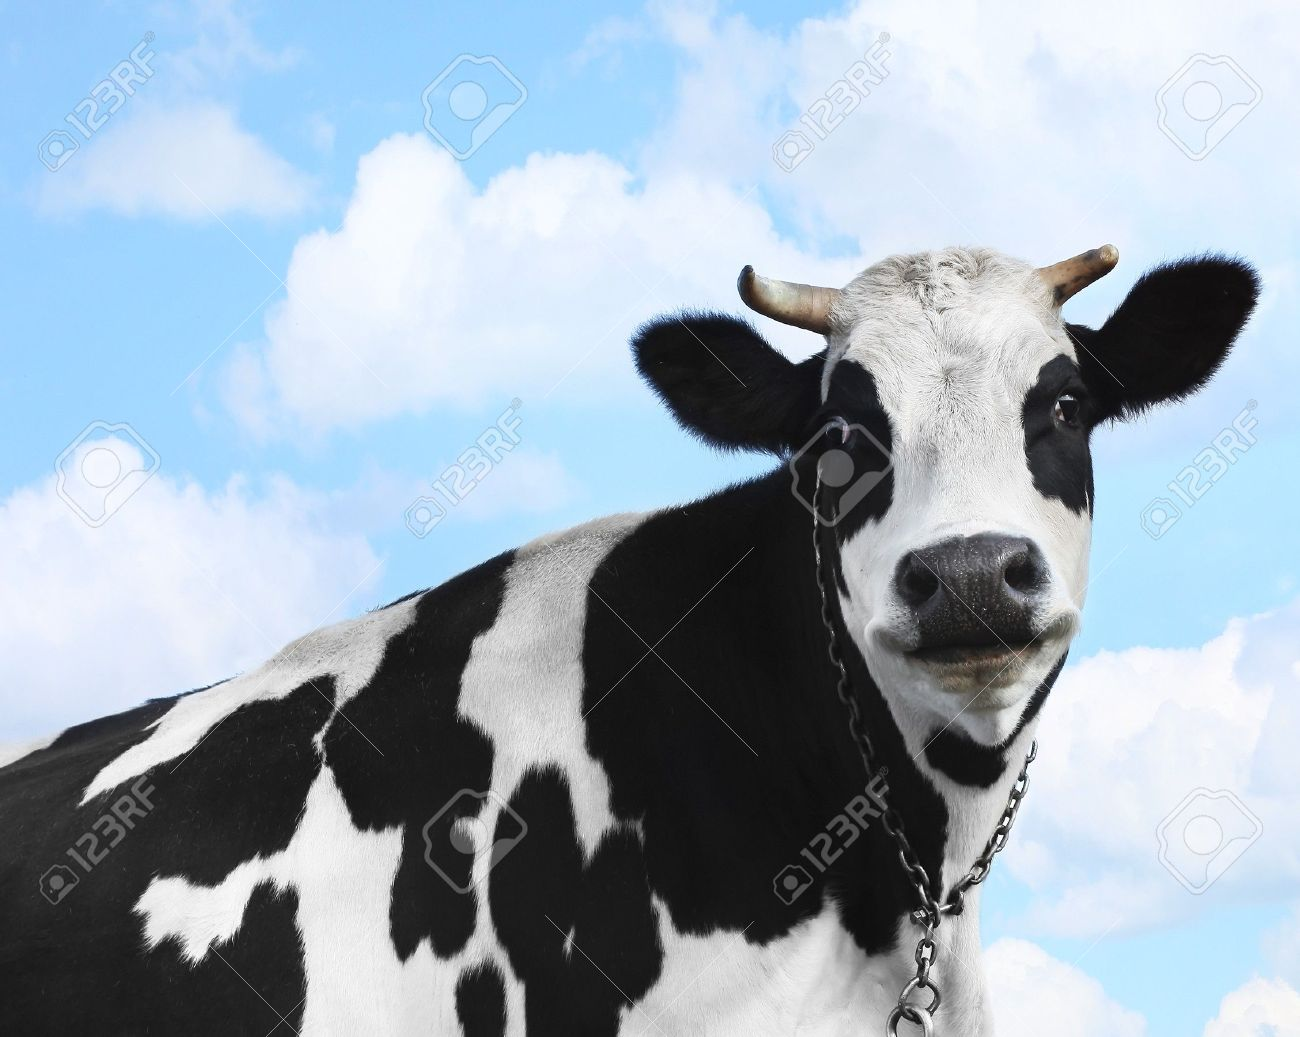 Smiling cow over blue sky background Stock Photo - 7112076